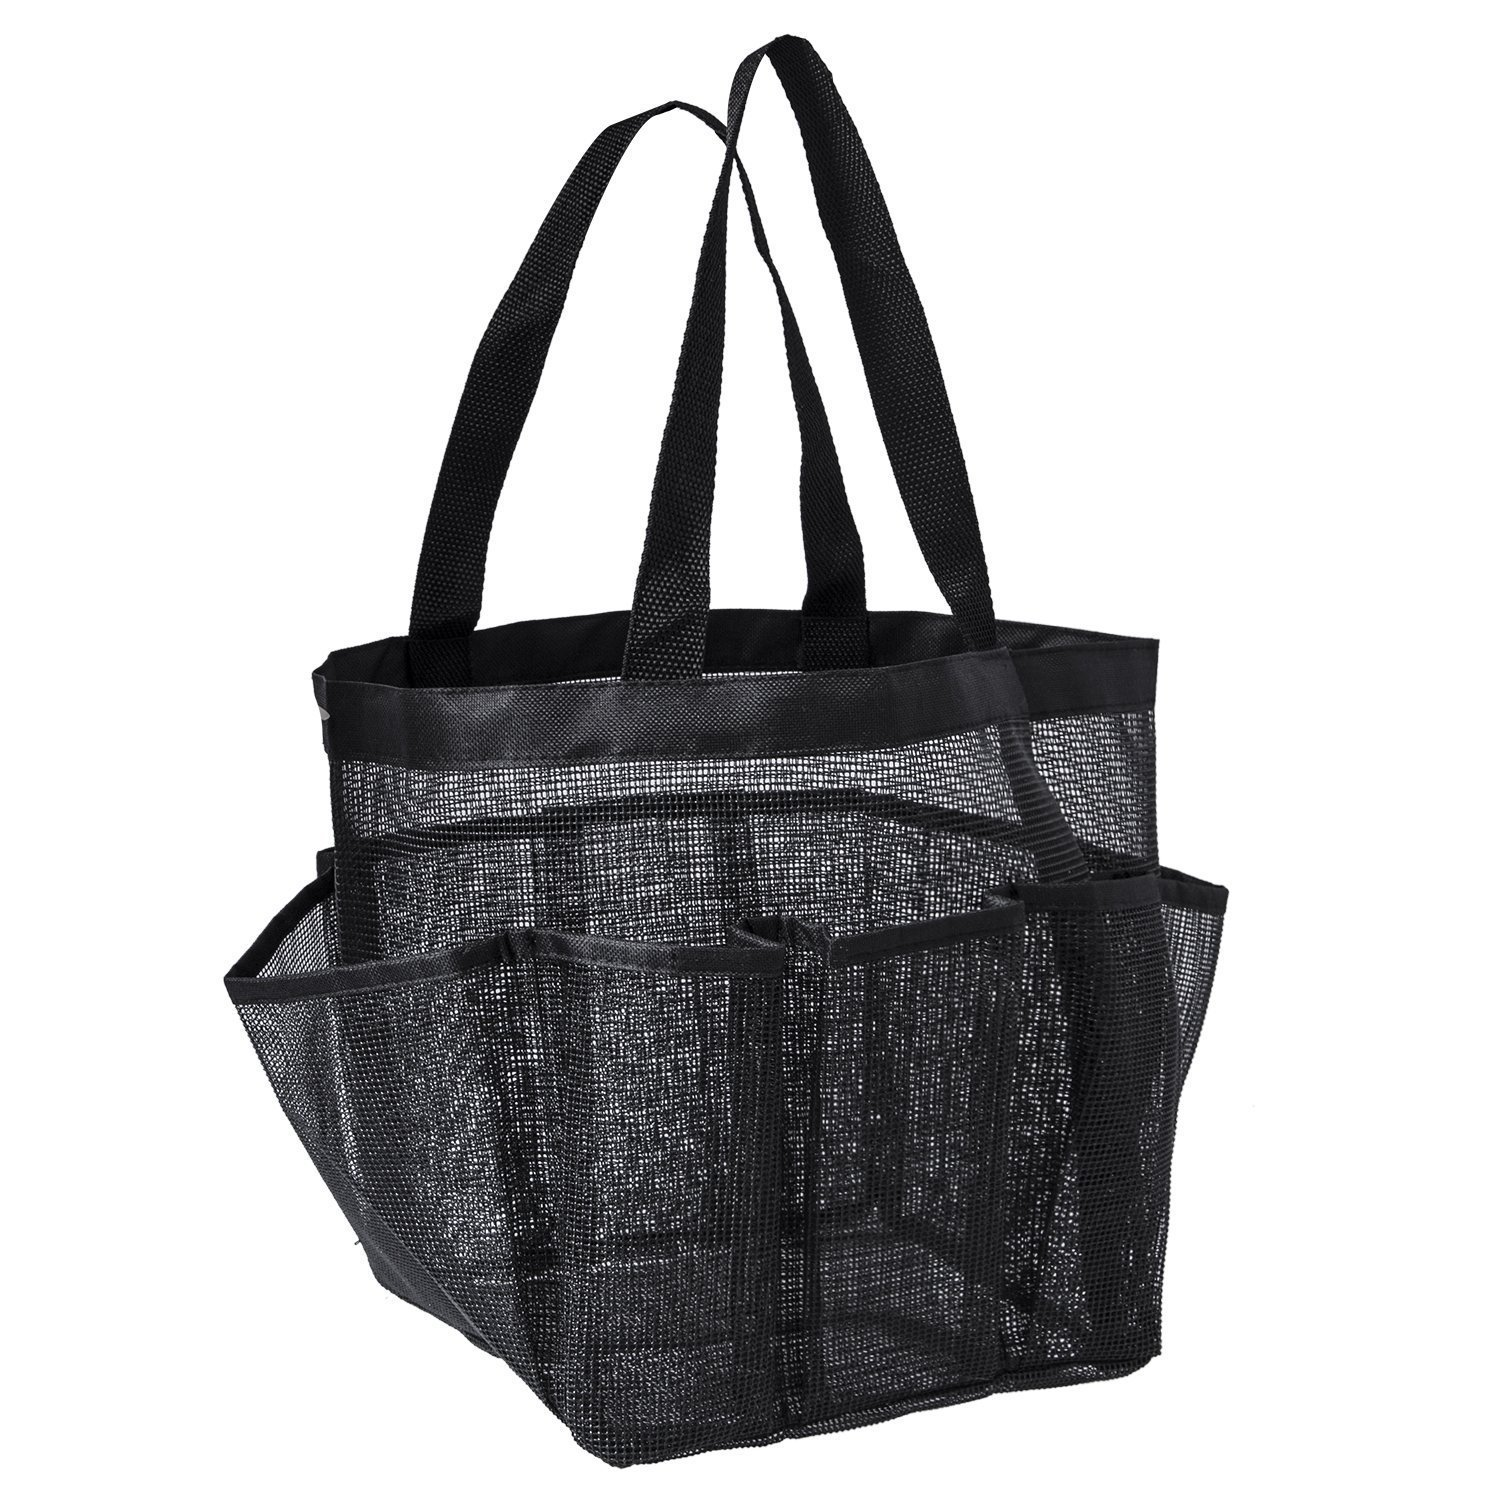 Us 5 95 22 Off Fggs Portable Mesh Shower Caddy Quick Dry Tote Hanging Bath Toiletry Organizer Bag 9 Storage Pockets Double Handles In